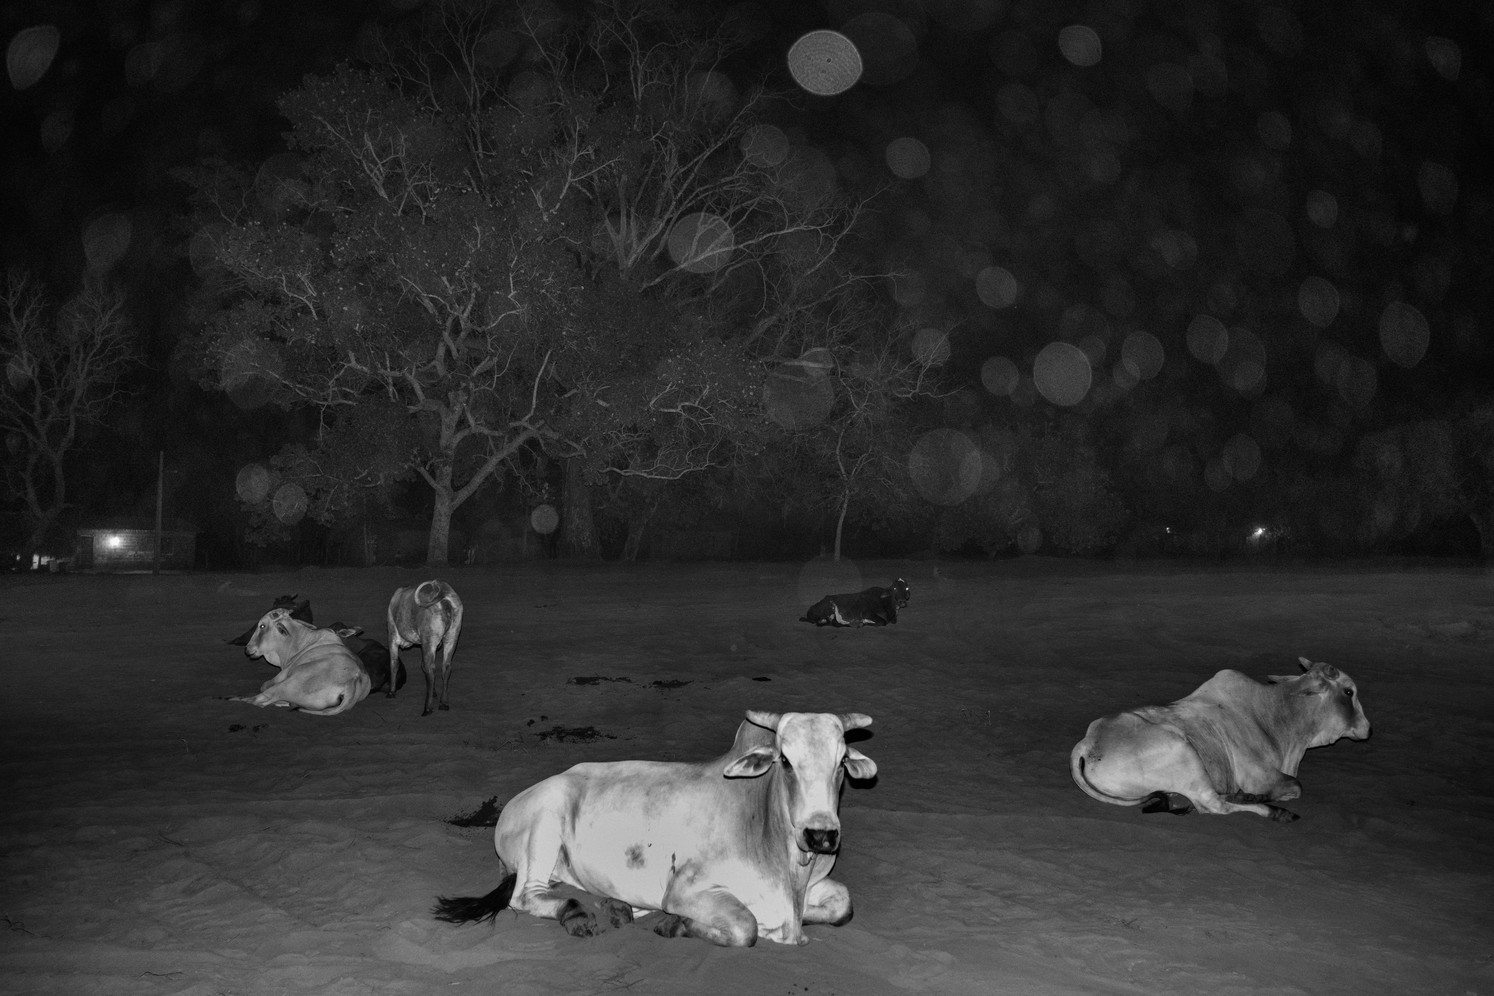 Cows at night in the Maranhao state. In Brazil's Amazon states, the vast majority of deforested lands become cattle pasture. As global commodity prices fell, Brazil beef prices have held fairly steadily and cattle is seen as a safe bet for investors and speculators. Criminal gangs also plant cows on illegally occupied lands to pretend it is being used for farming before they sell it on the black market. Brazil is the world's largest beef exporter with Hong Kong, China and Russia the biggest buyers.